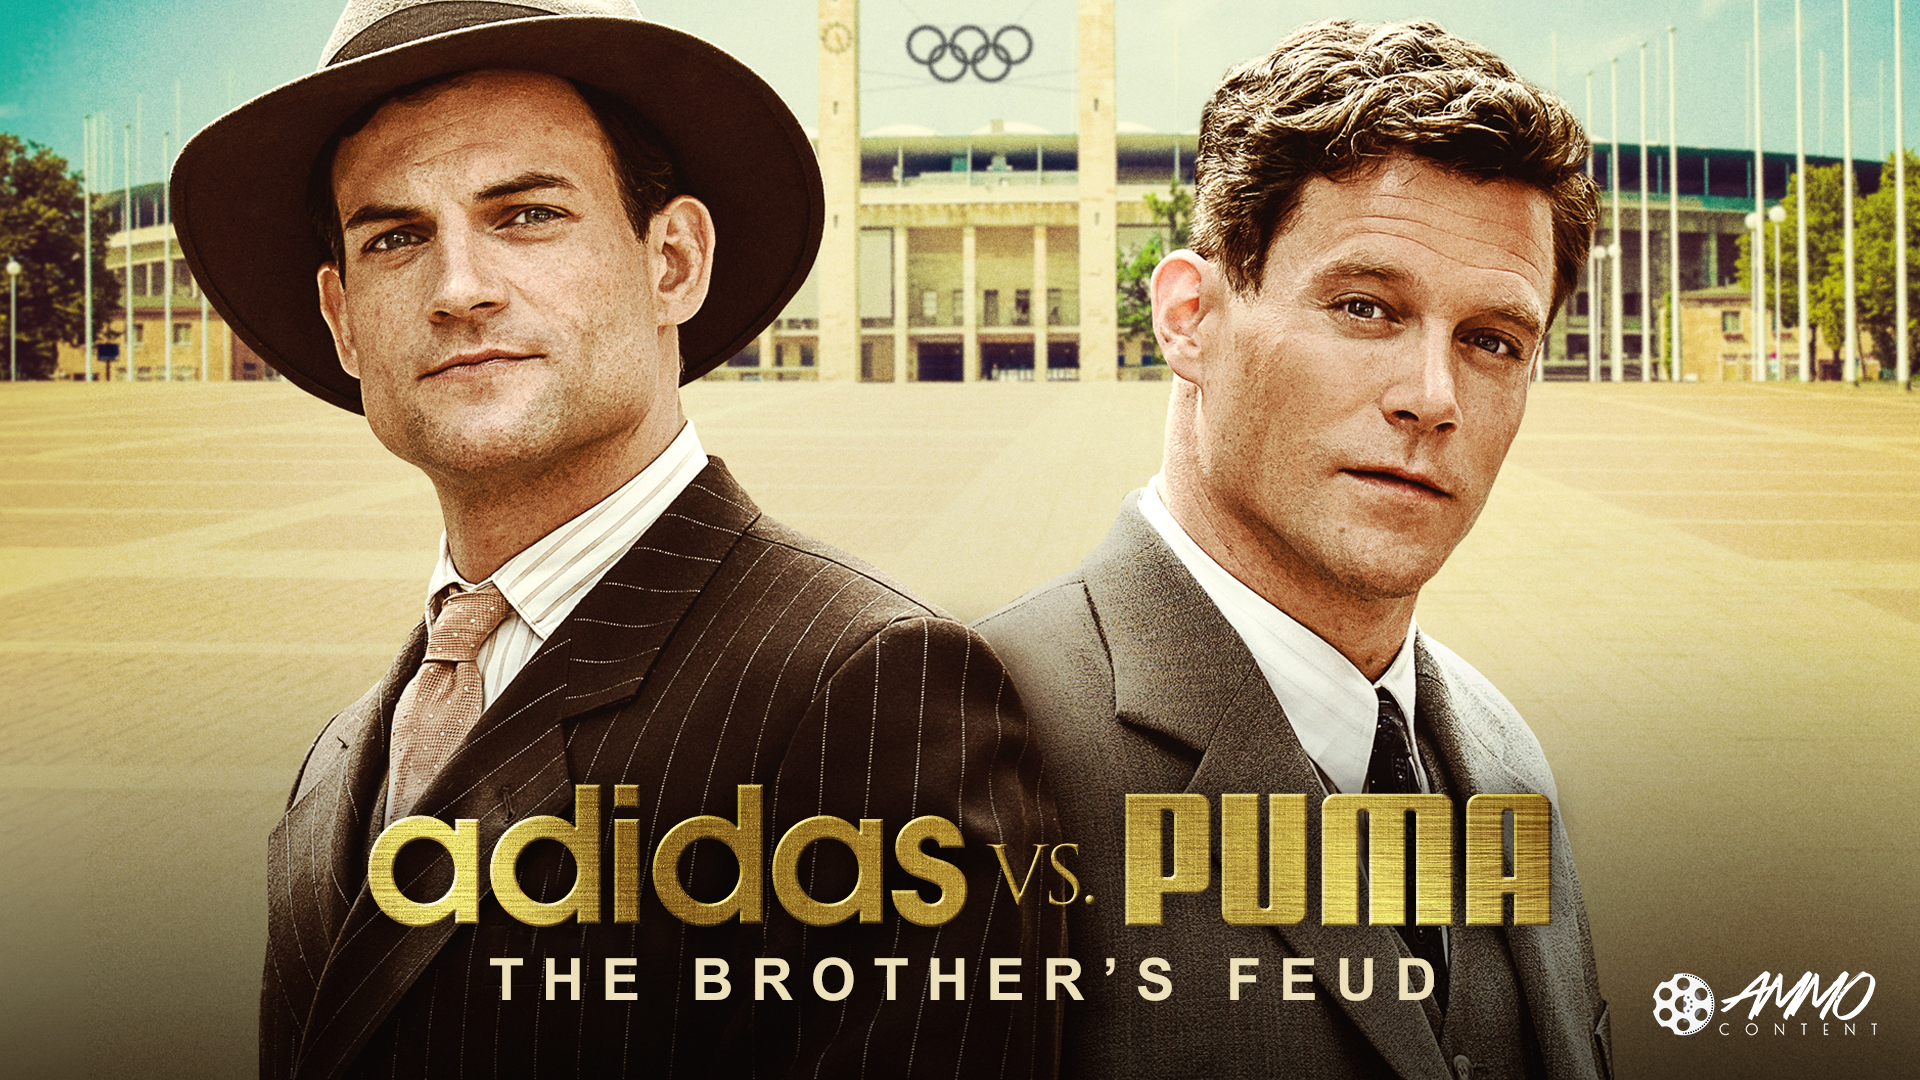 Adidas Vs. Puma: The Brother's Feud